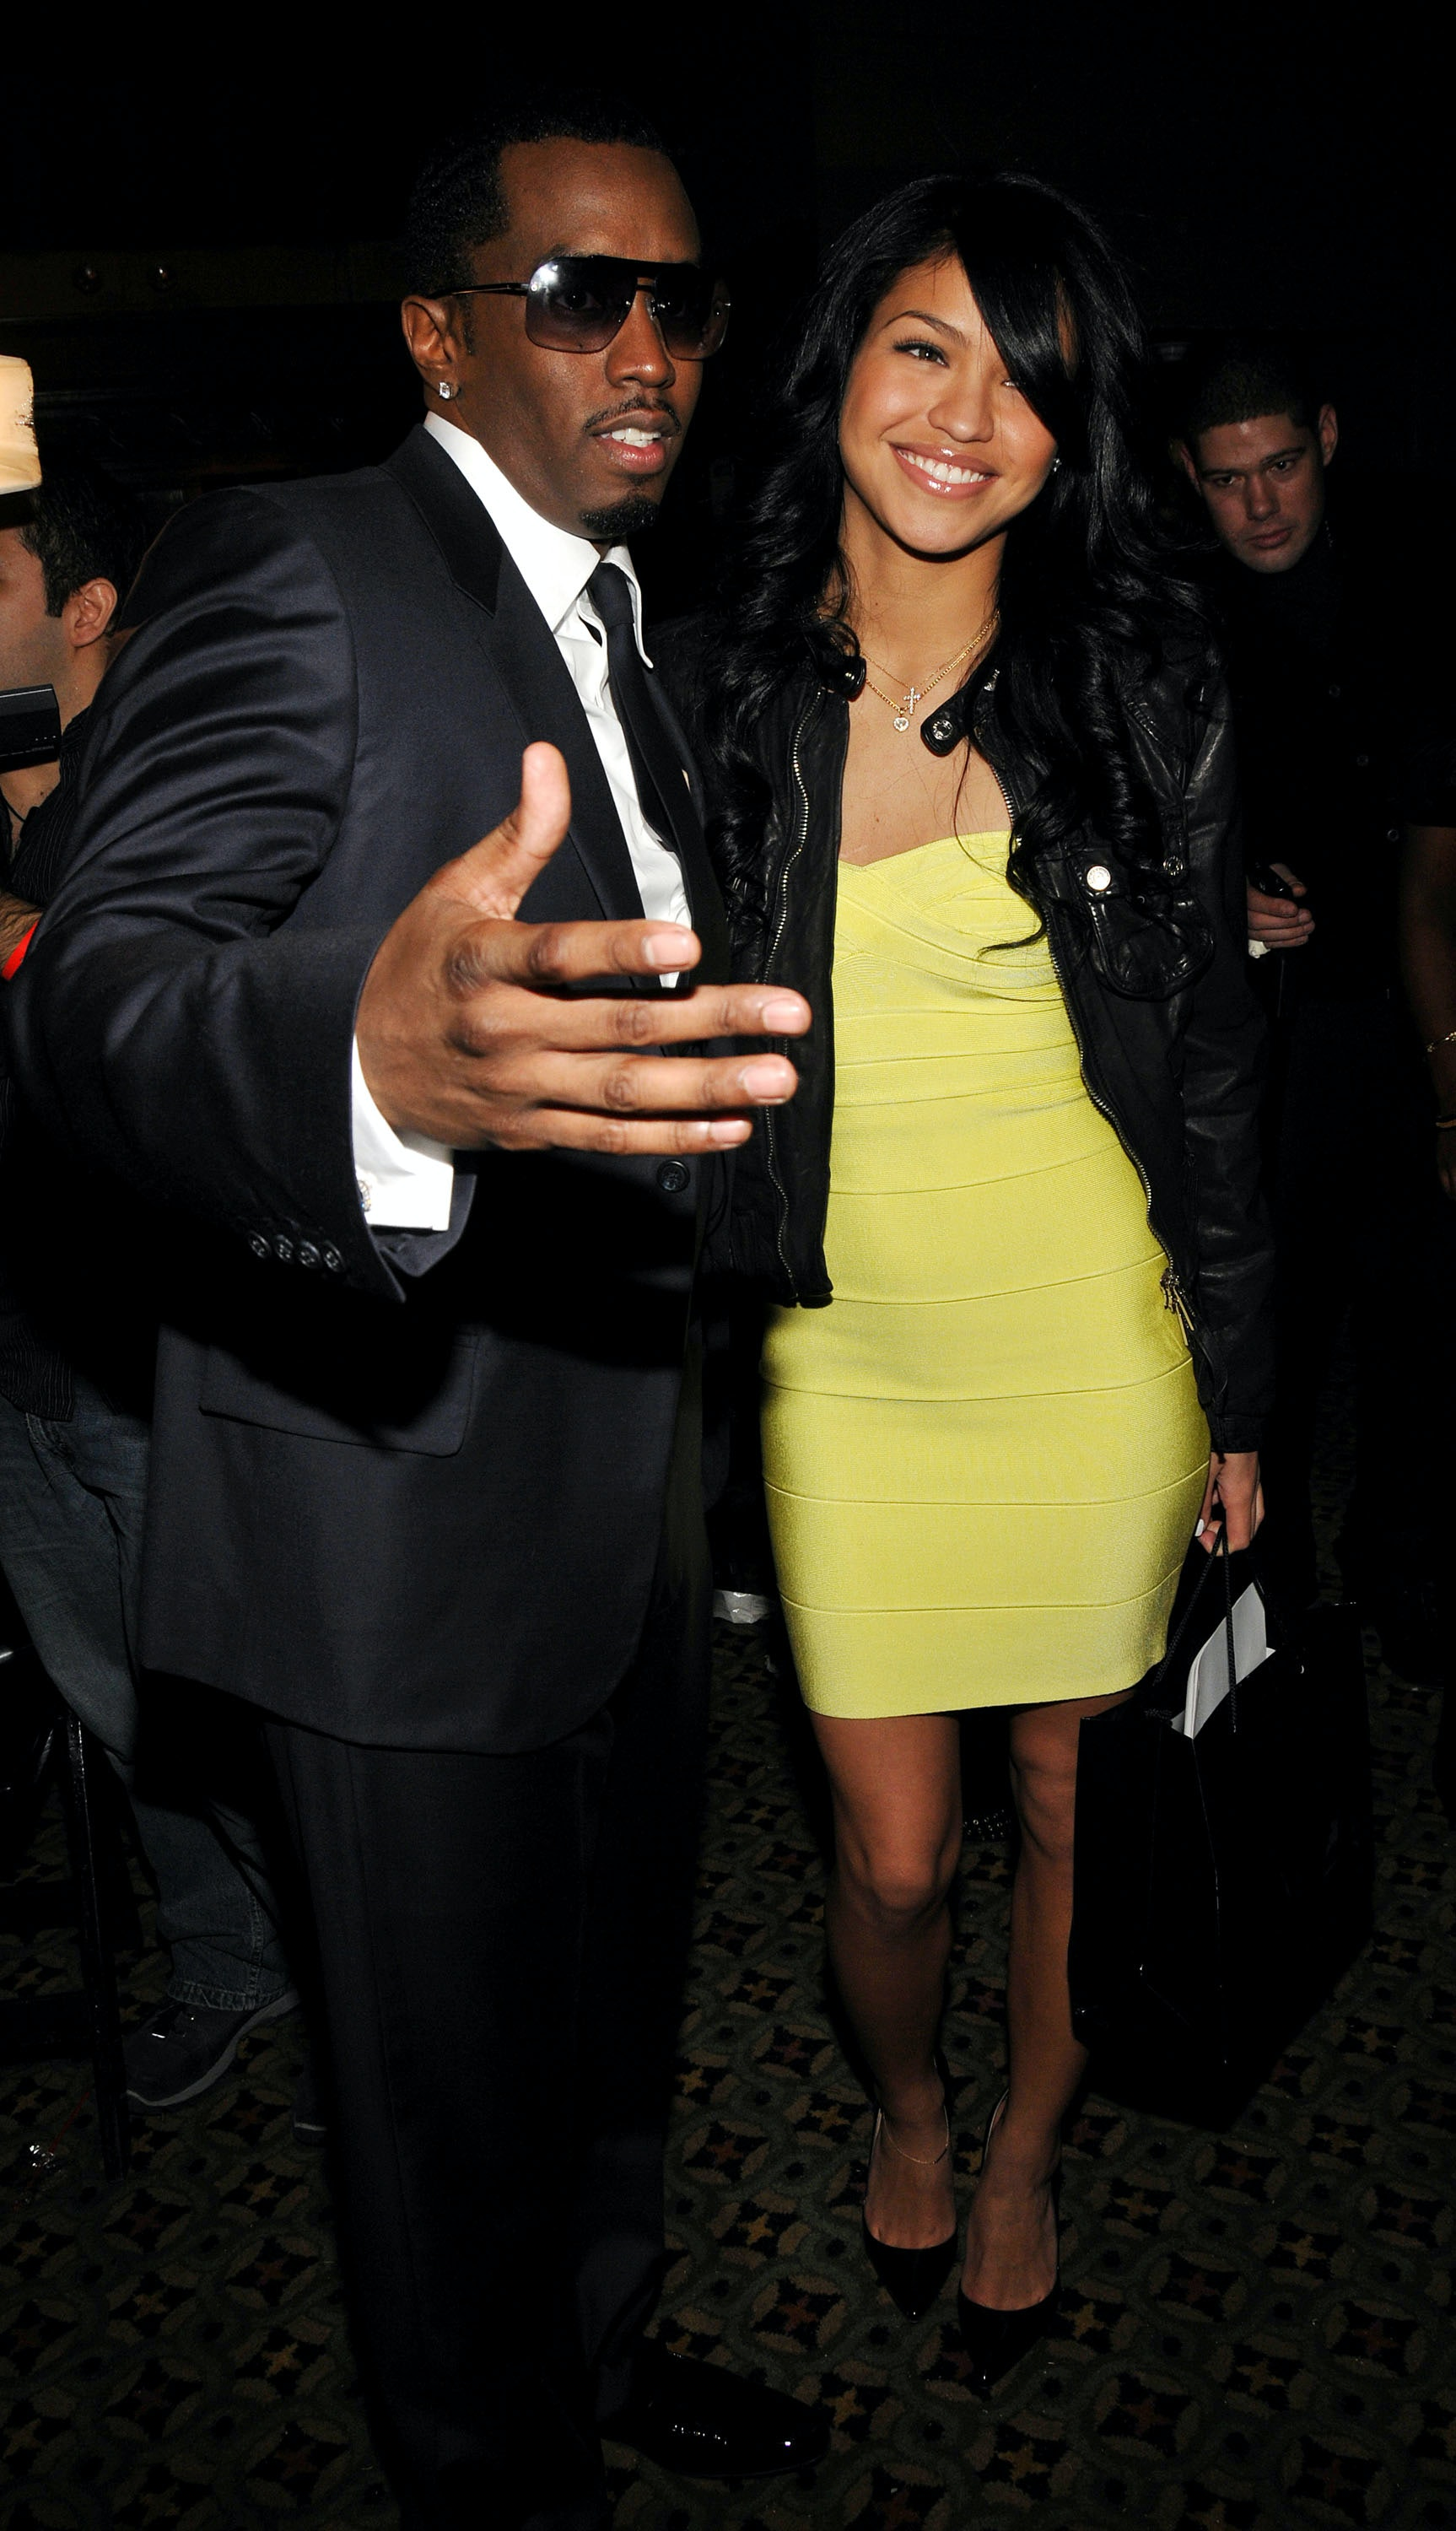 Cassie dating chris brown